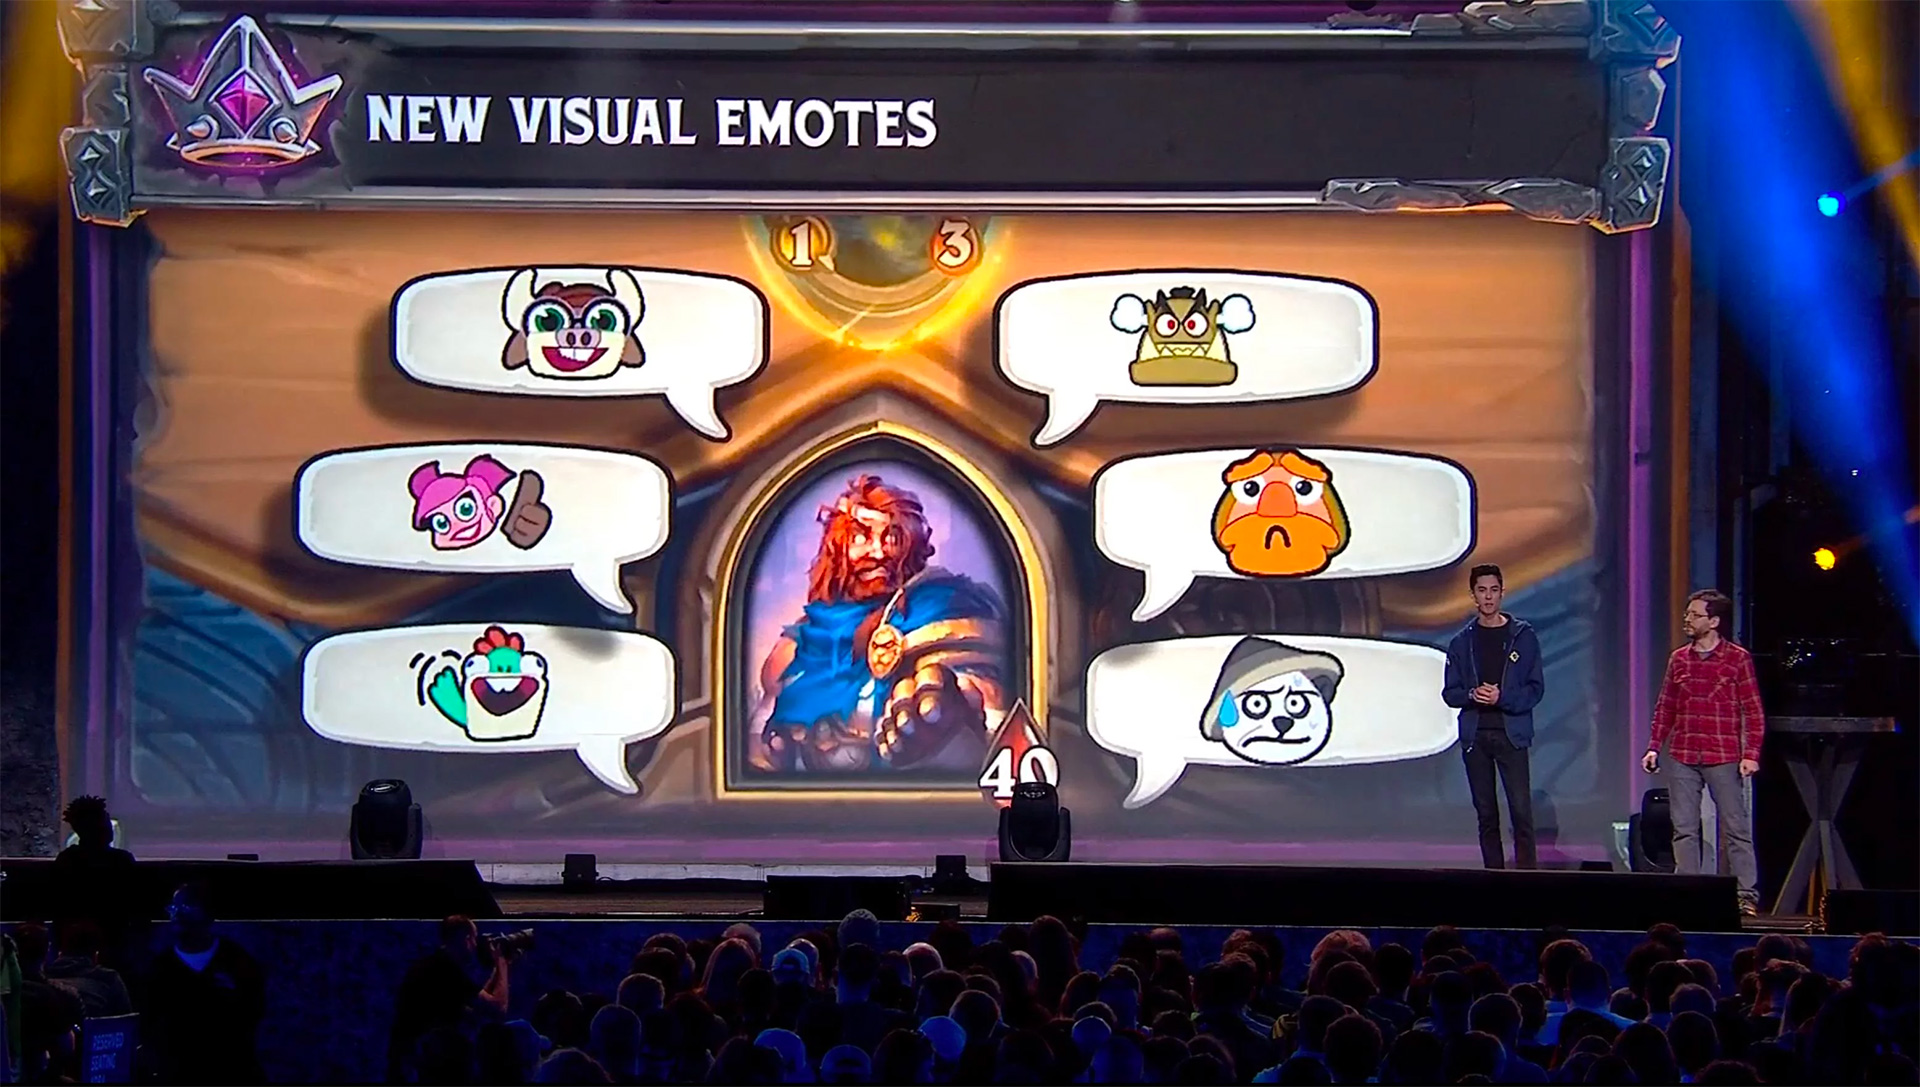 Le mode champ de bataille propose des emotes visuelles